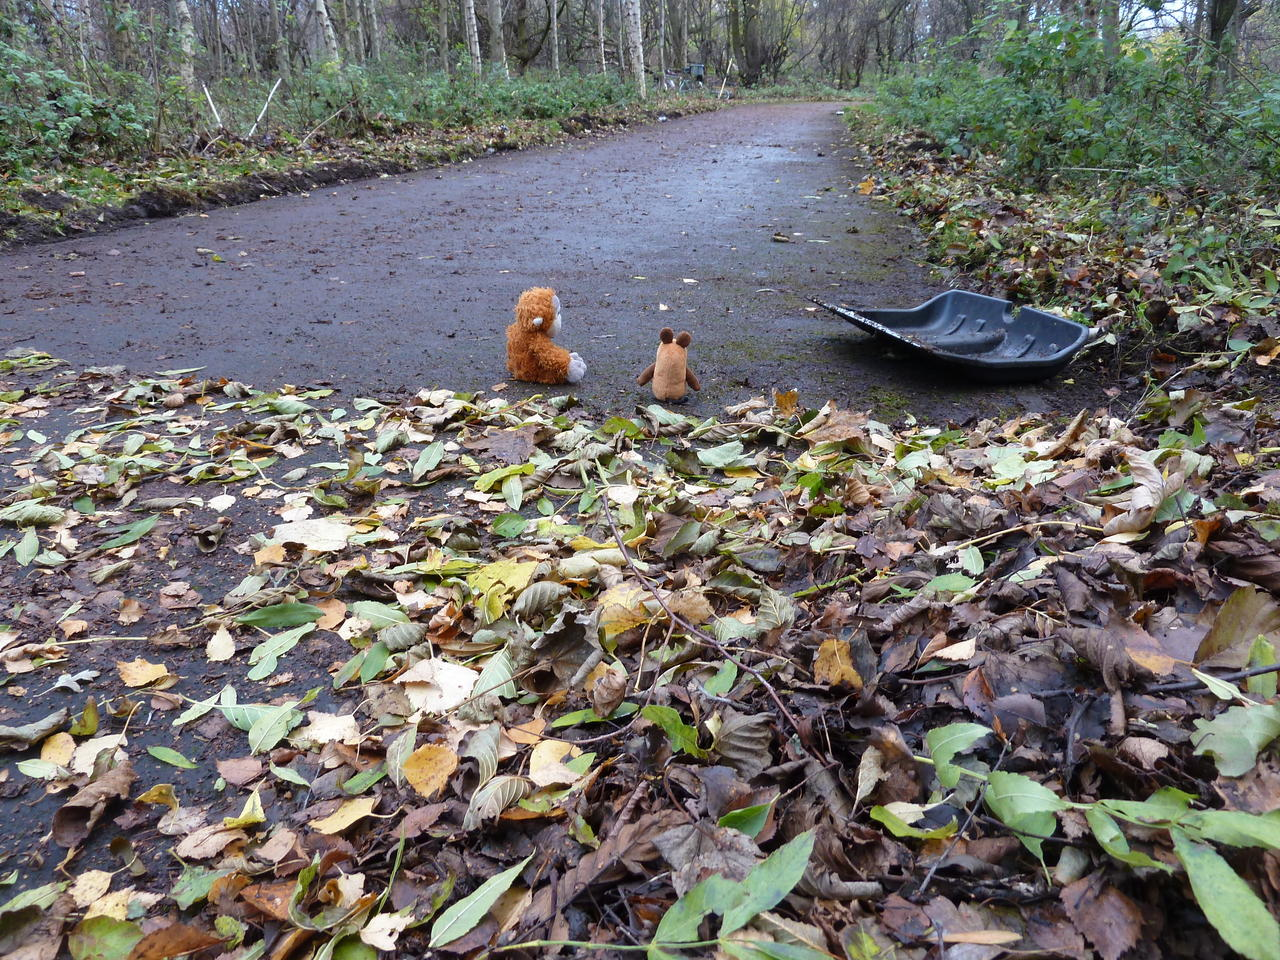 Pongo and Mouse next to their shovel, looking back where the path is clean